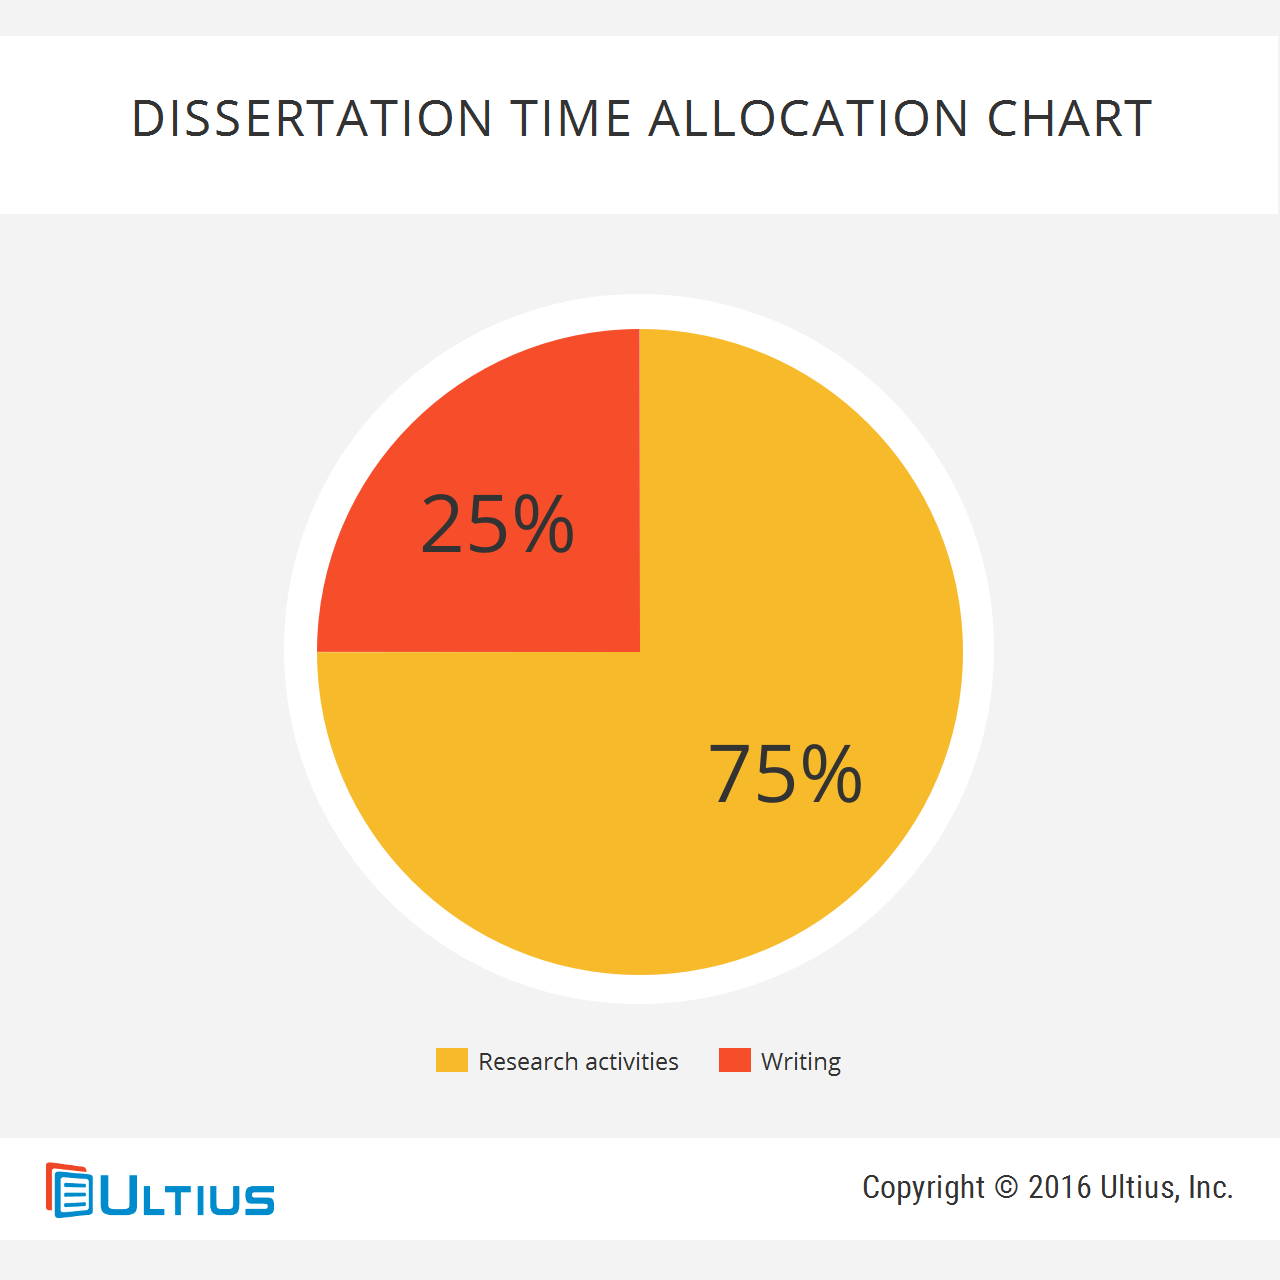 Dissertation time allocation chart - research vs. writing